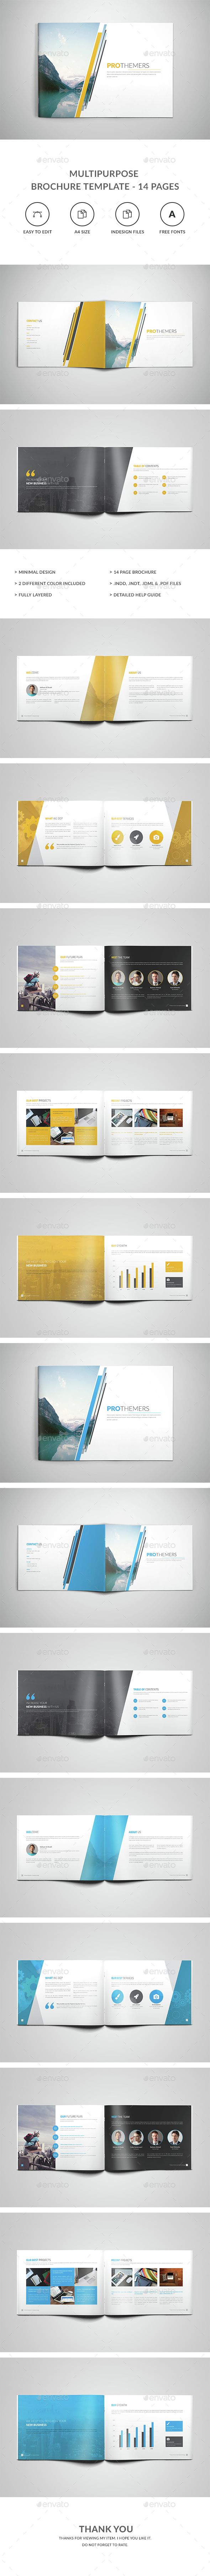 Multipurpose Brochure Template – 14 Pages | Tarjeta de visita ...